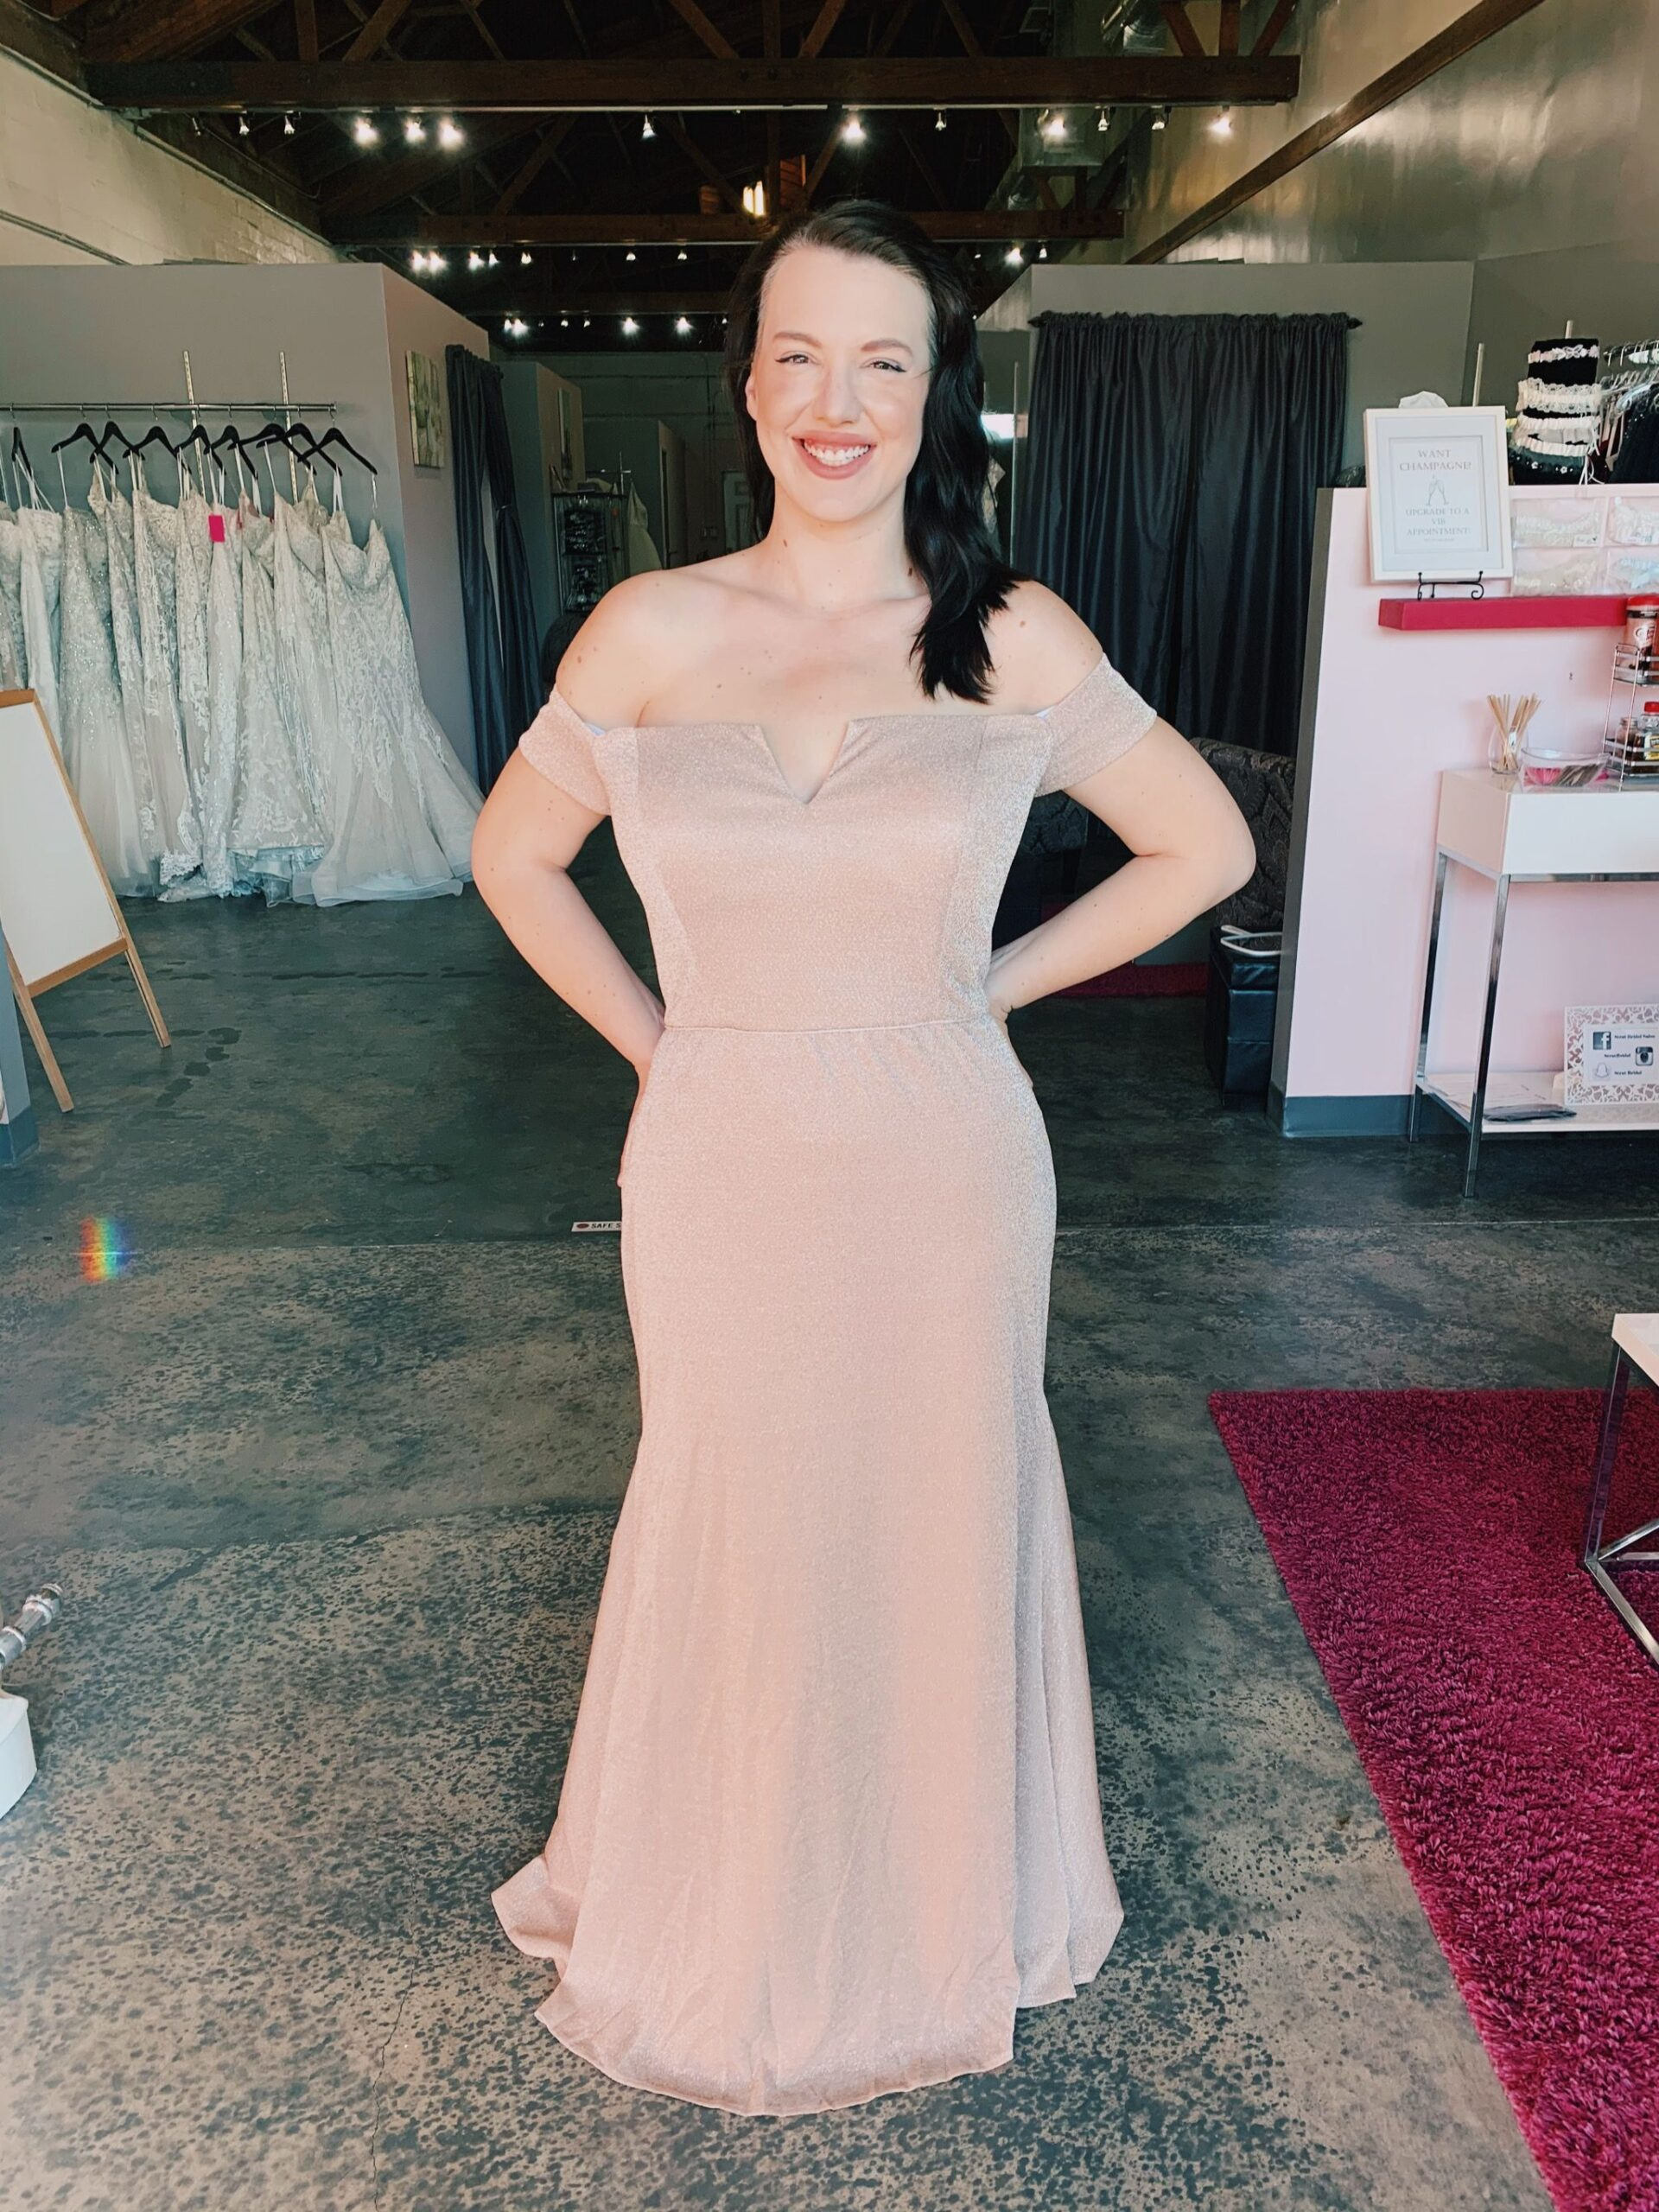 Smiling model in sparkly light pink bridesmaids dress off the shoulder sleeve